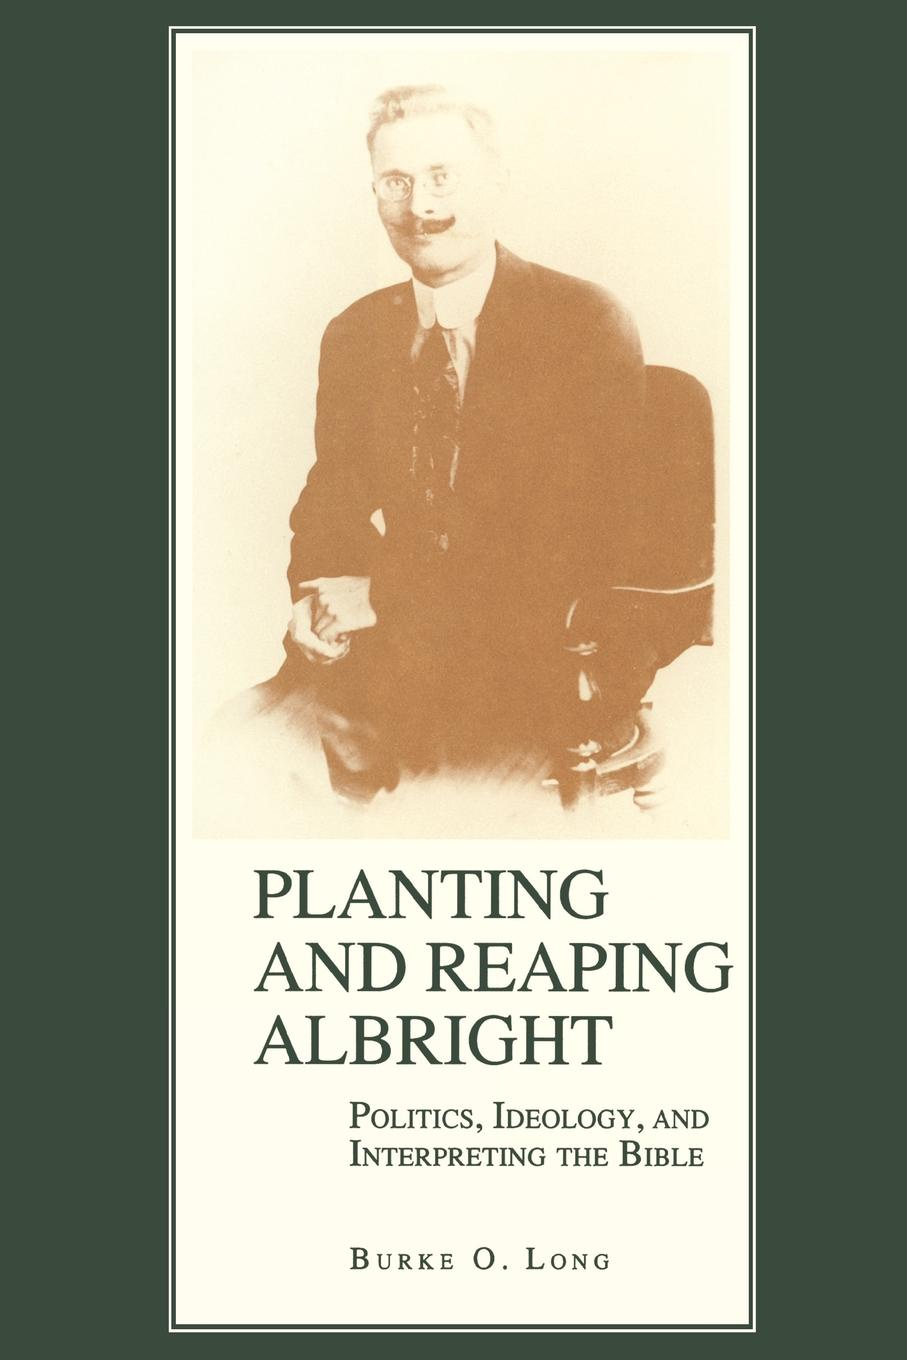 Burke O. Long Planting and Reaping Albright. Politics, Ideology, and Interpreting the Bible burke o long planting and reaping albright politics ideology and interpreting the bible